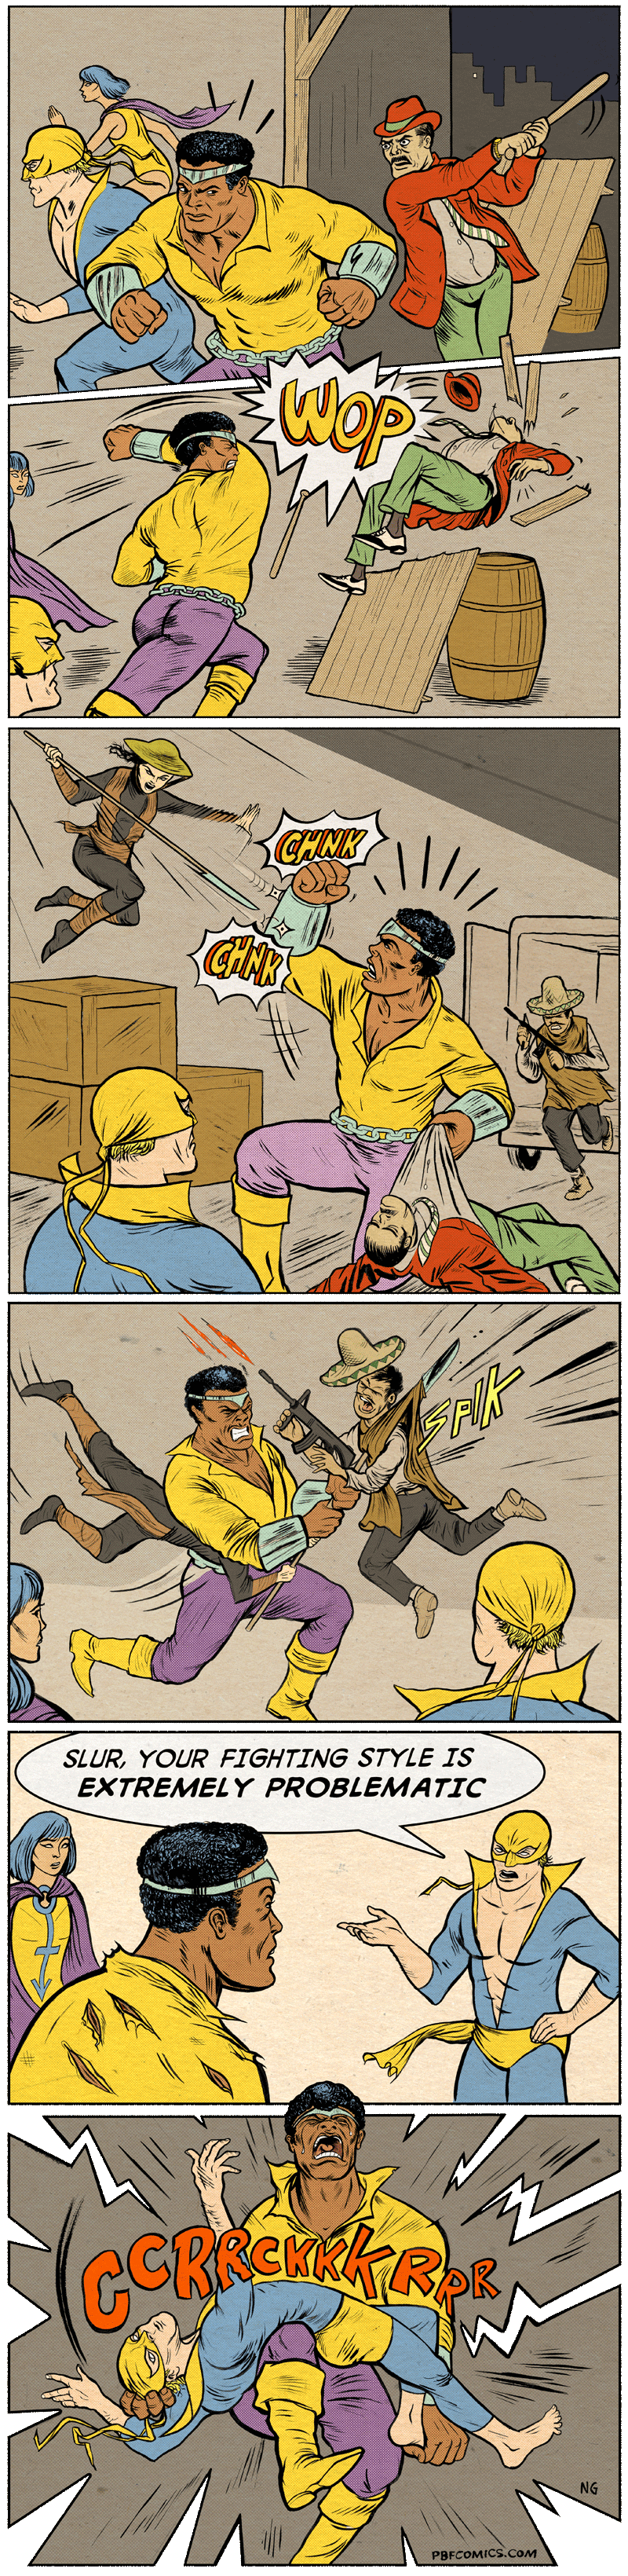 Twisted Comic - Cartoon - CHNK SLUR, YOUR FIGHTING STYLE IS EXTREMELY PROBLEMATIC CRCRR NG PBFCOMICS.COM